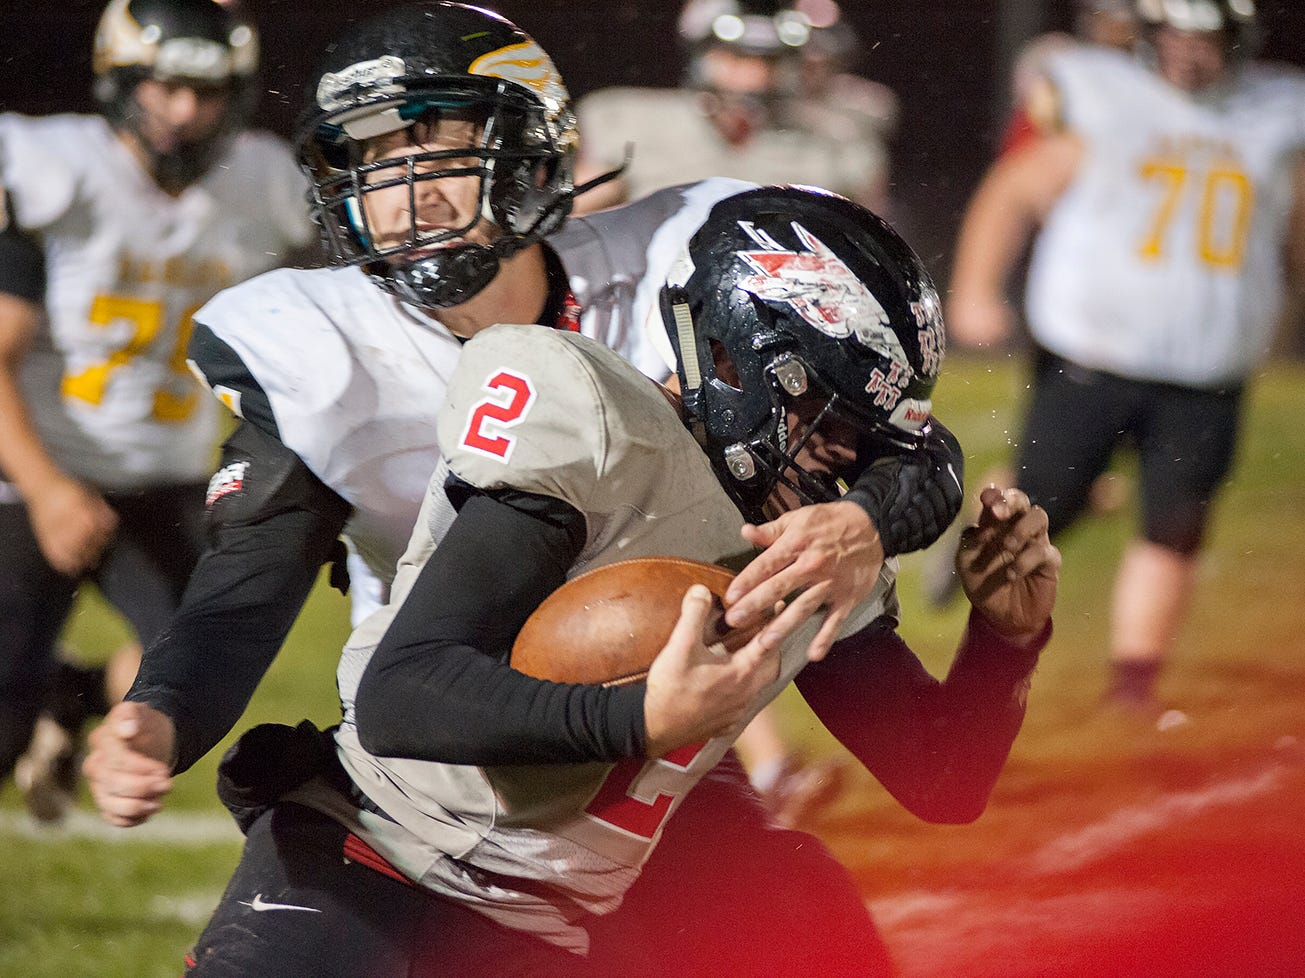 Bucyrus' Ben Seibert is tackled while scrambling.